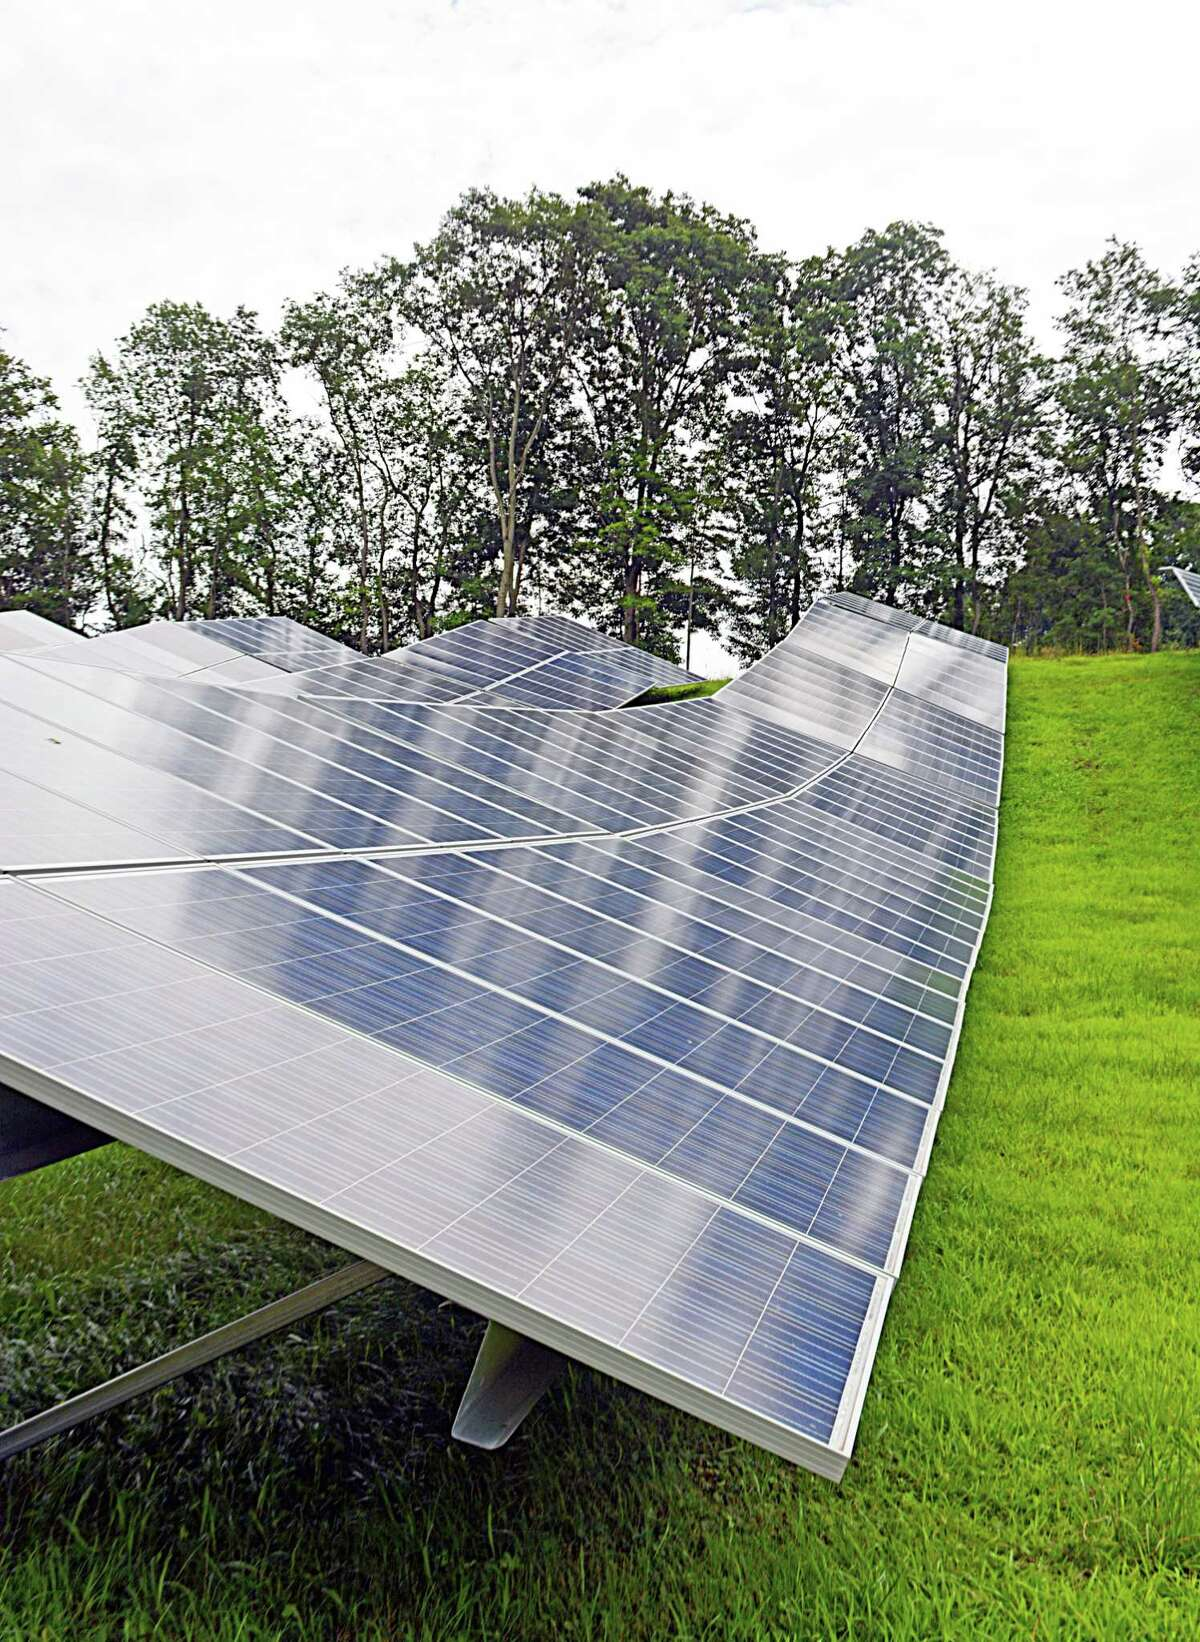 The solar array will supply 75 percent of the power needed to operate it. Greenskies will sell the power produced to Middletown at a discounted rate for the length of the contract.